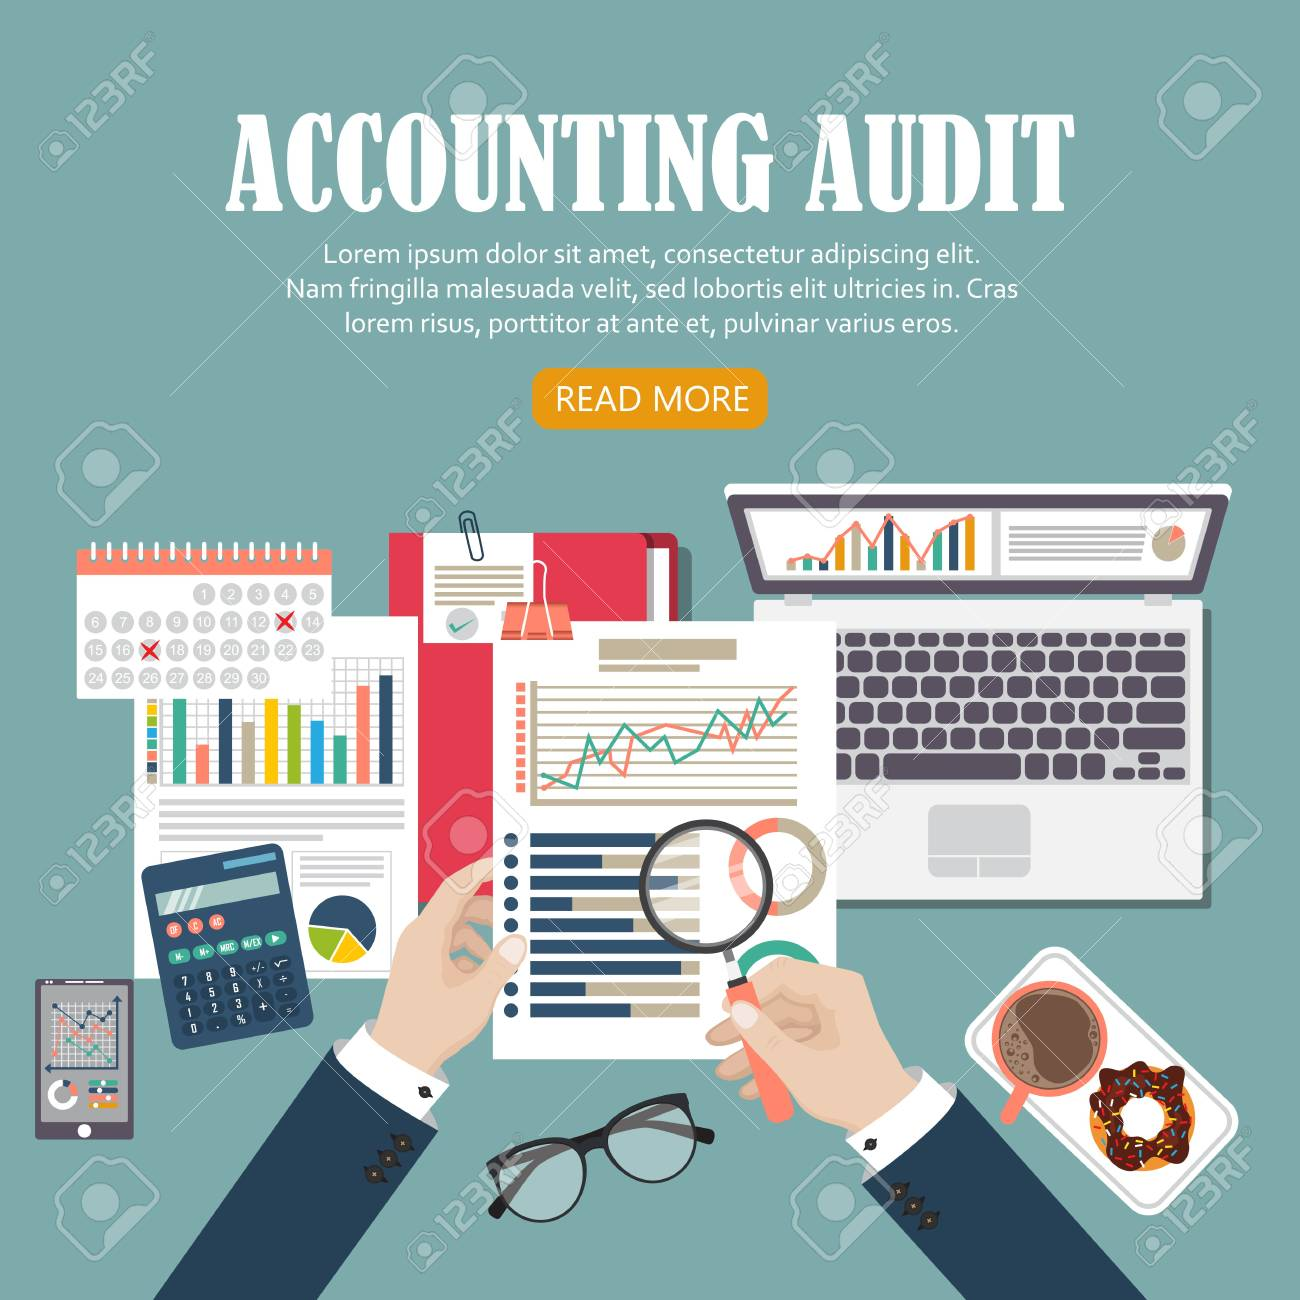 Auditing concept vector illustration. Tax process. Business background. Flat design of analysis, data, accounting, planning, management, research, calculation, reporting, project management. - 121529244